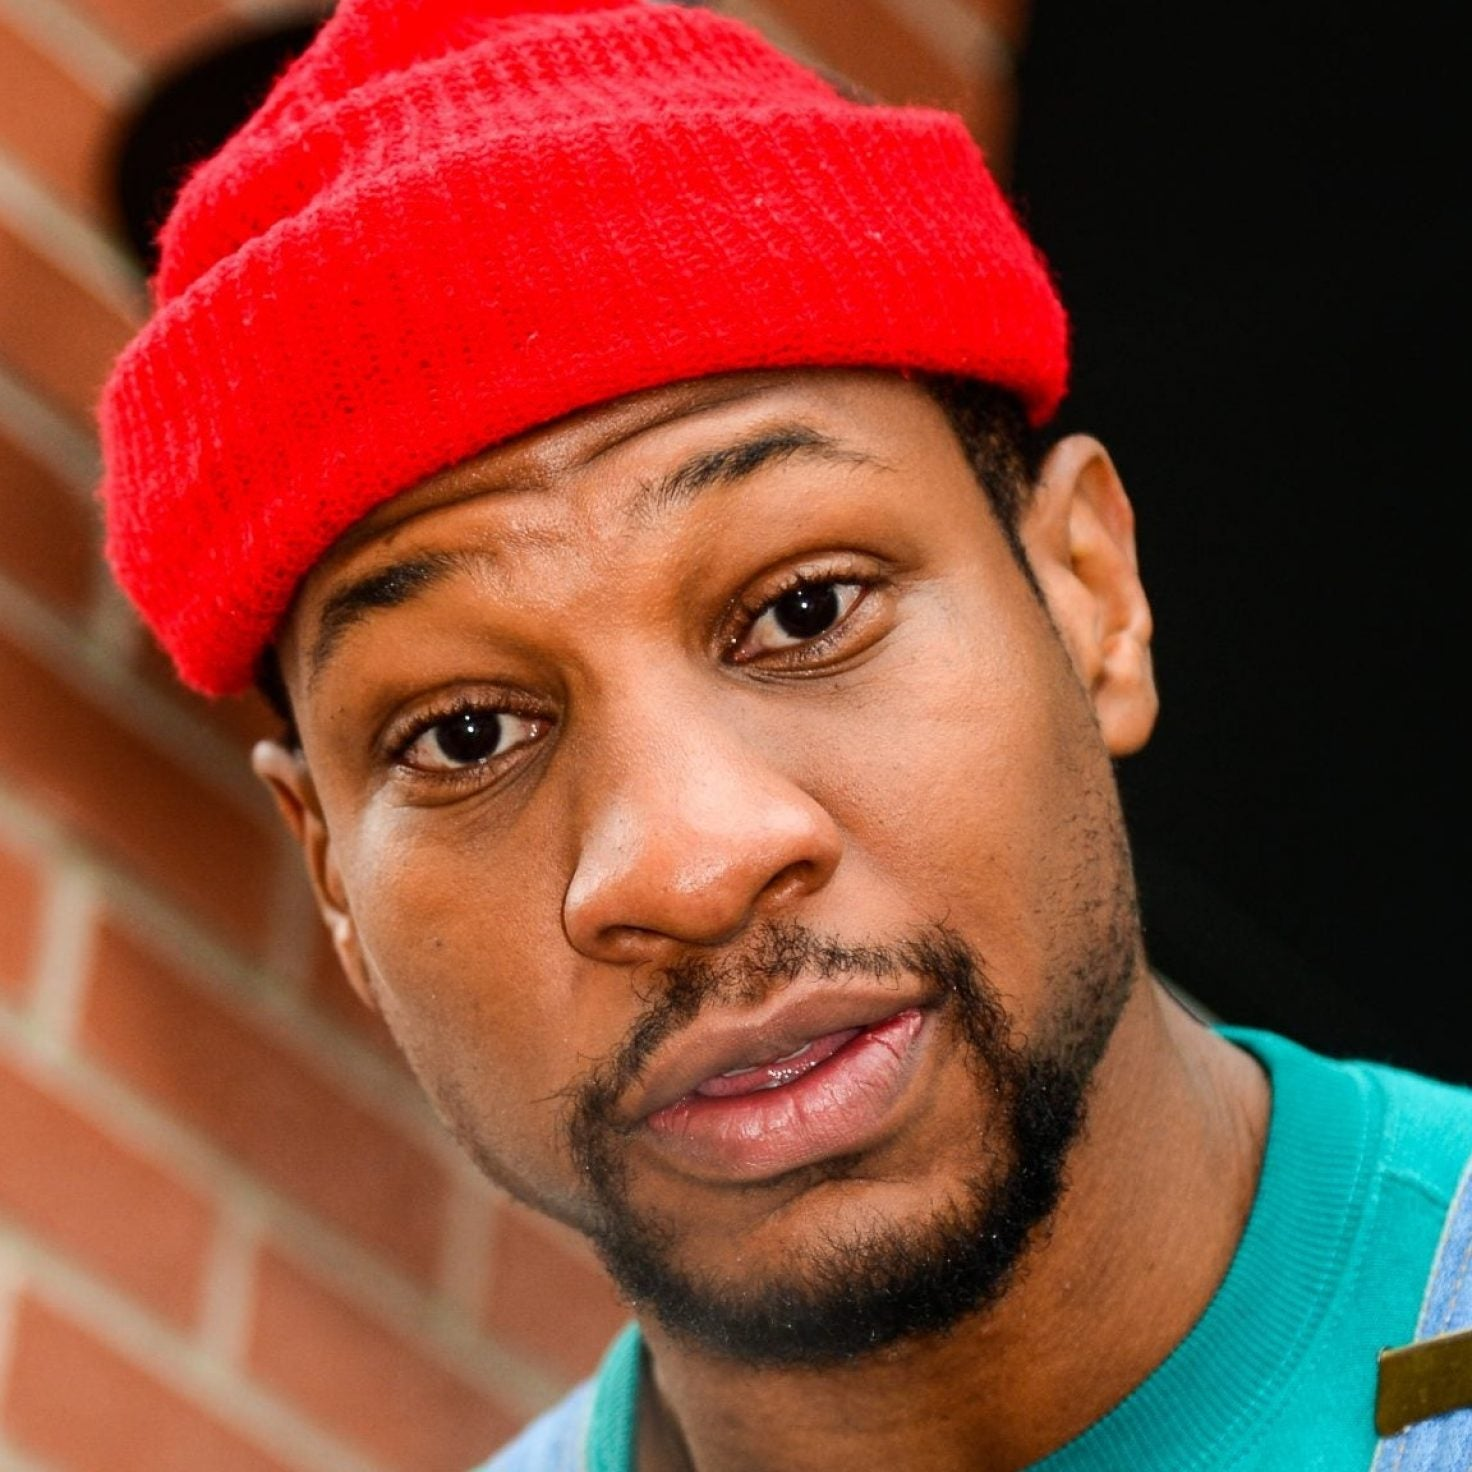 Jonathan Majors Is Set To Take On A Lead Role In Marvel's 'Ant-Man 3'